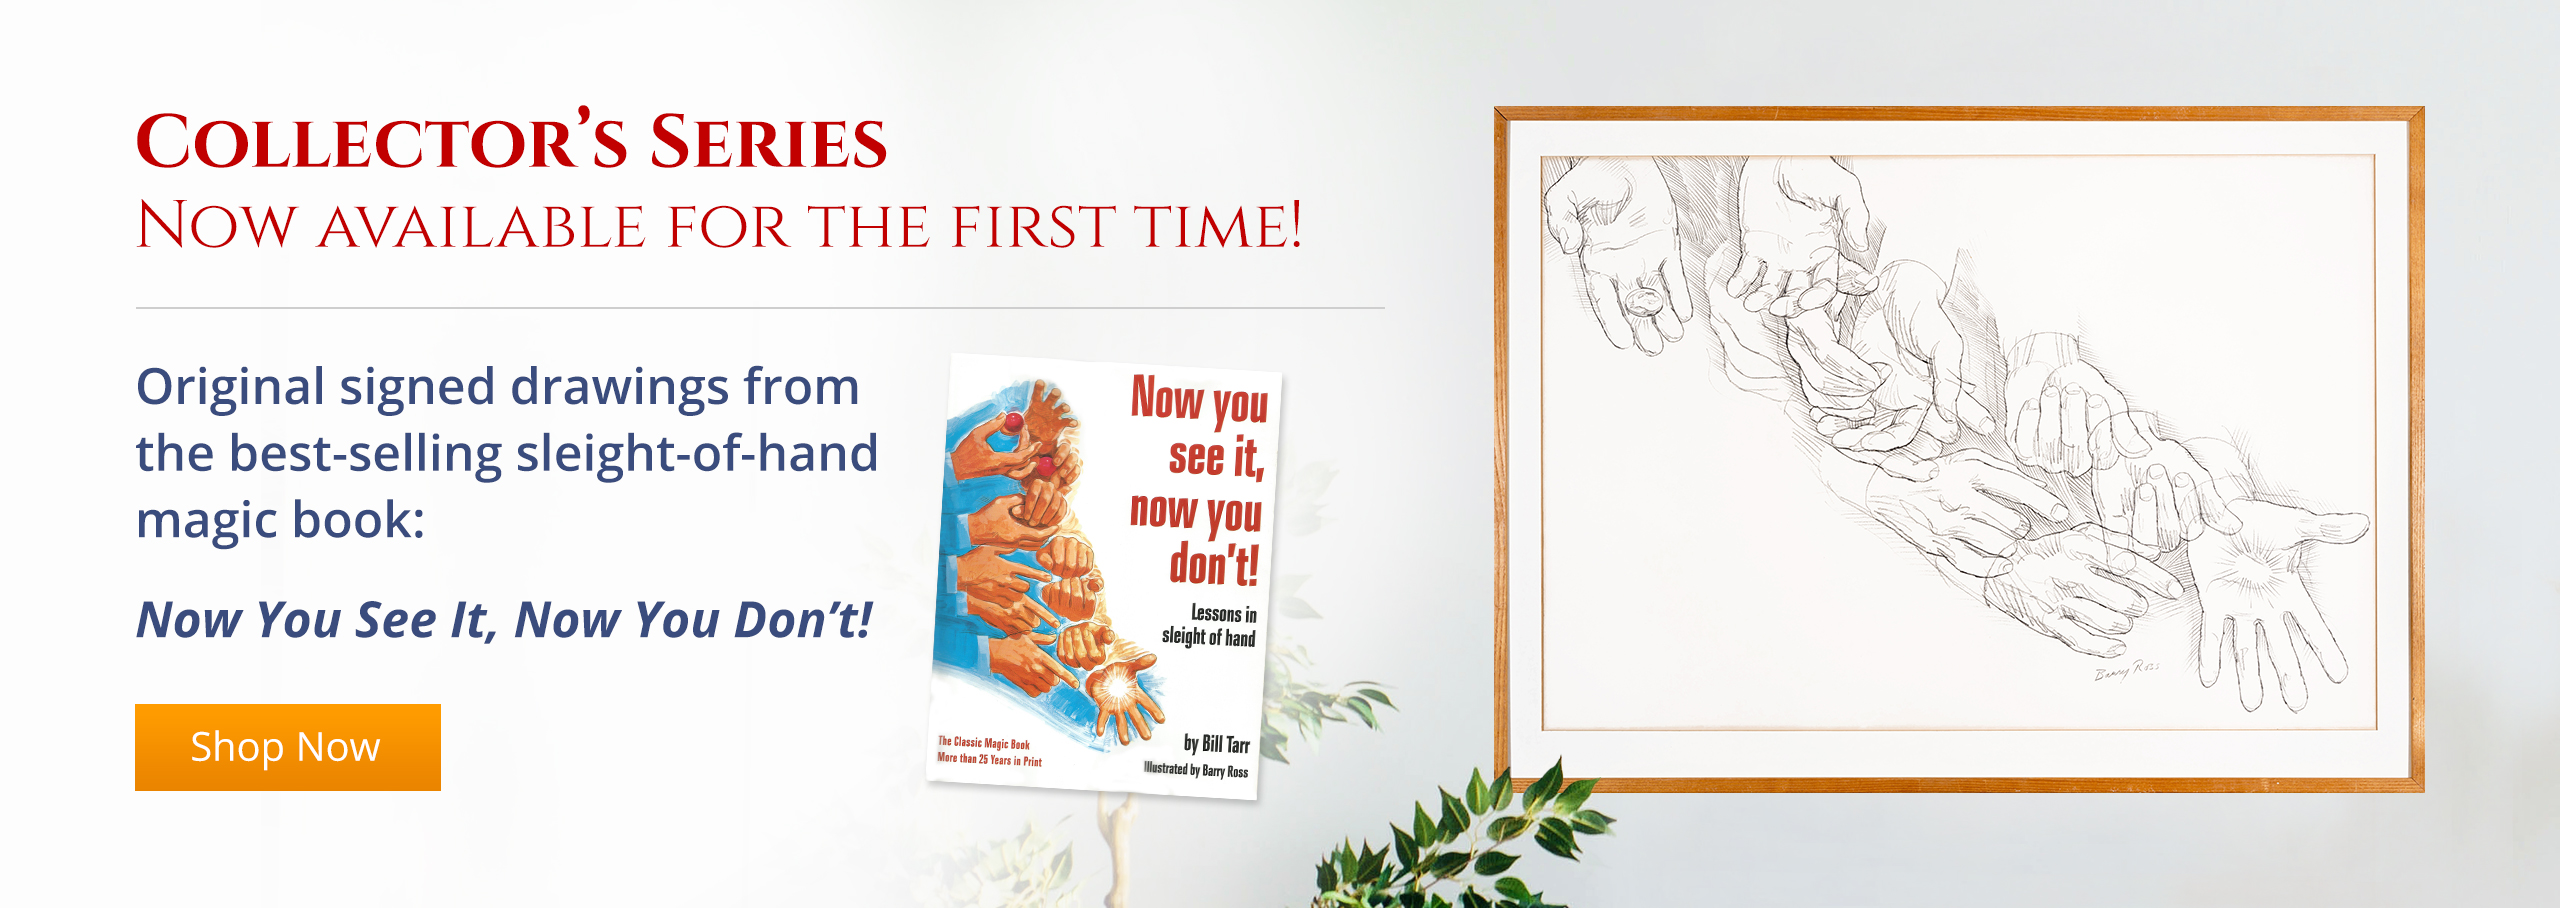 Limited time offer! Order a left and right page original drawings set and  receive $100 off your cart total!